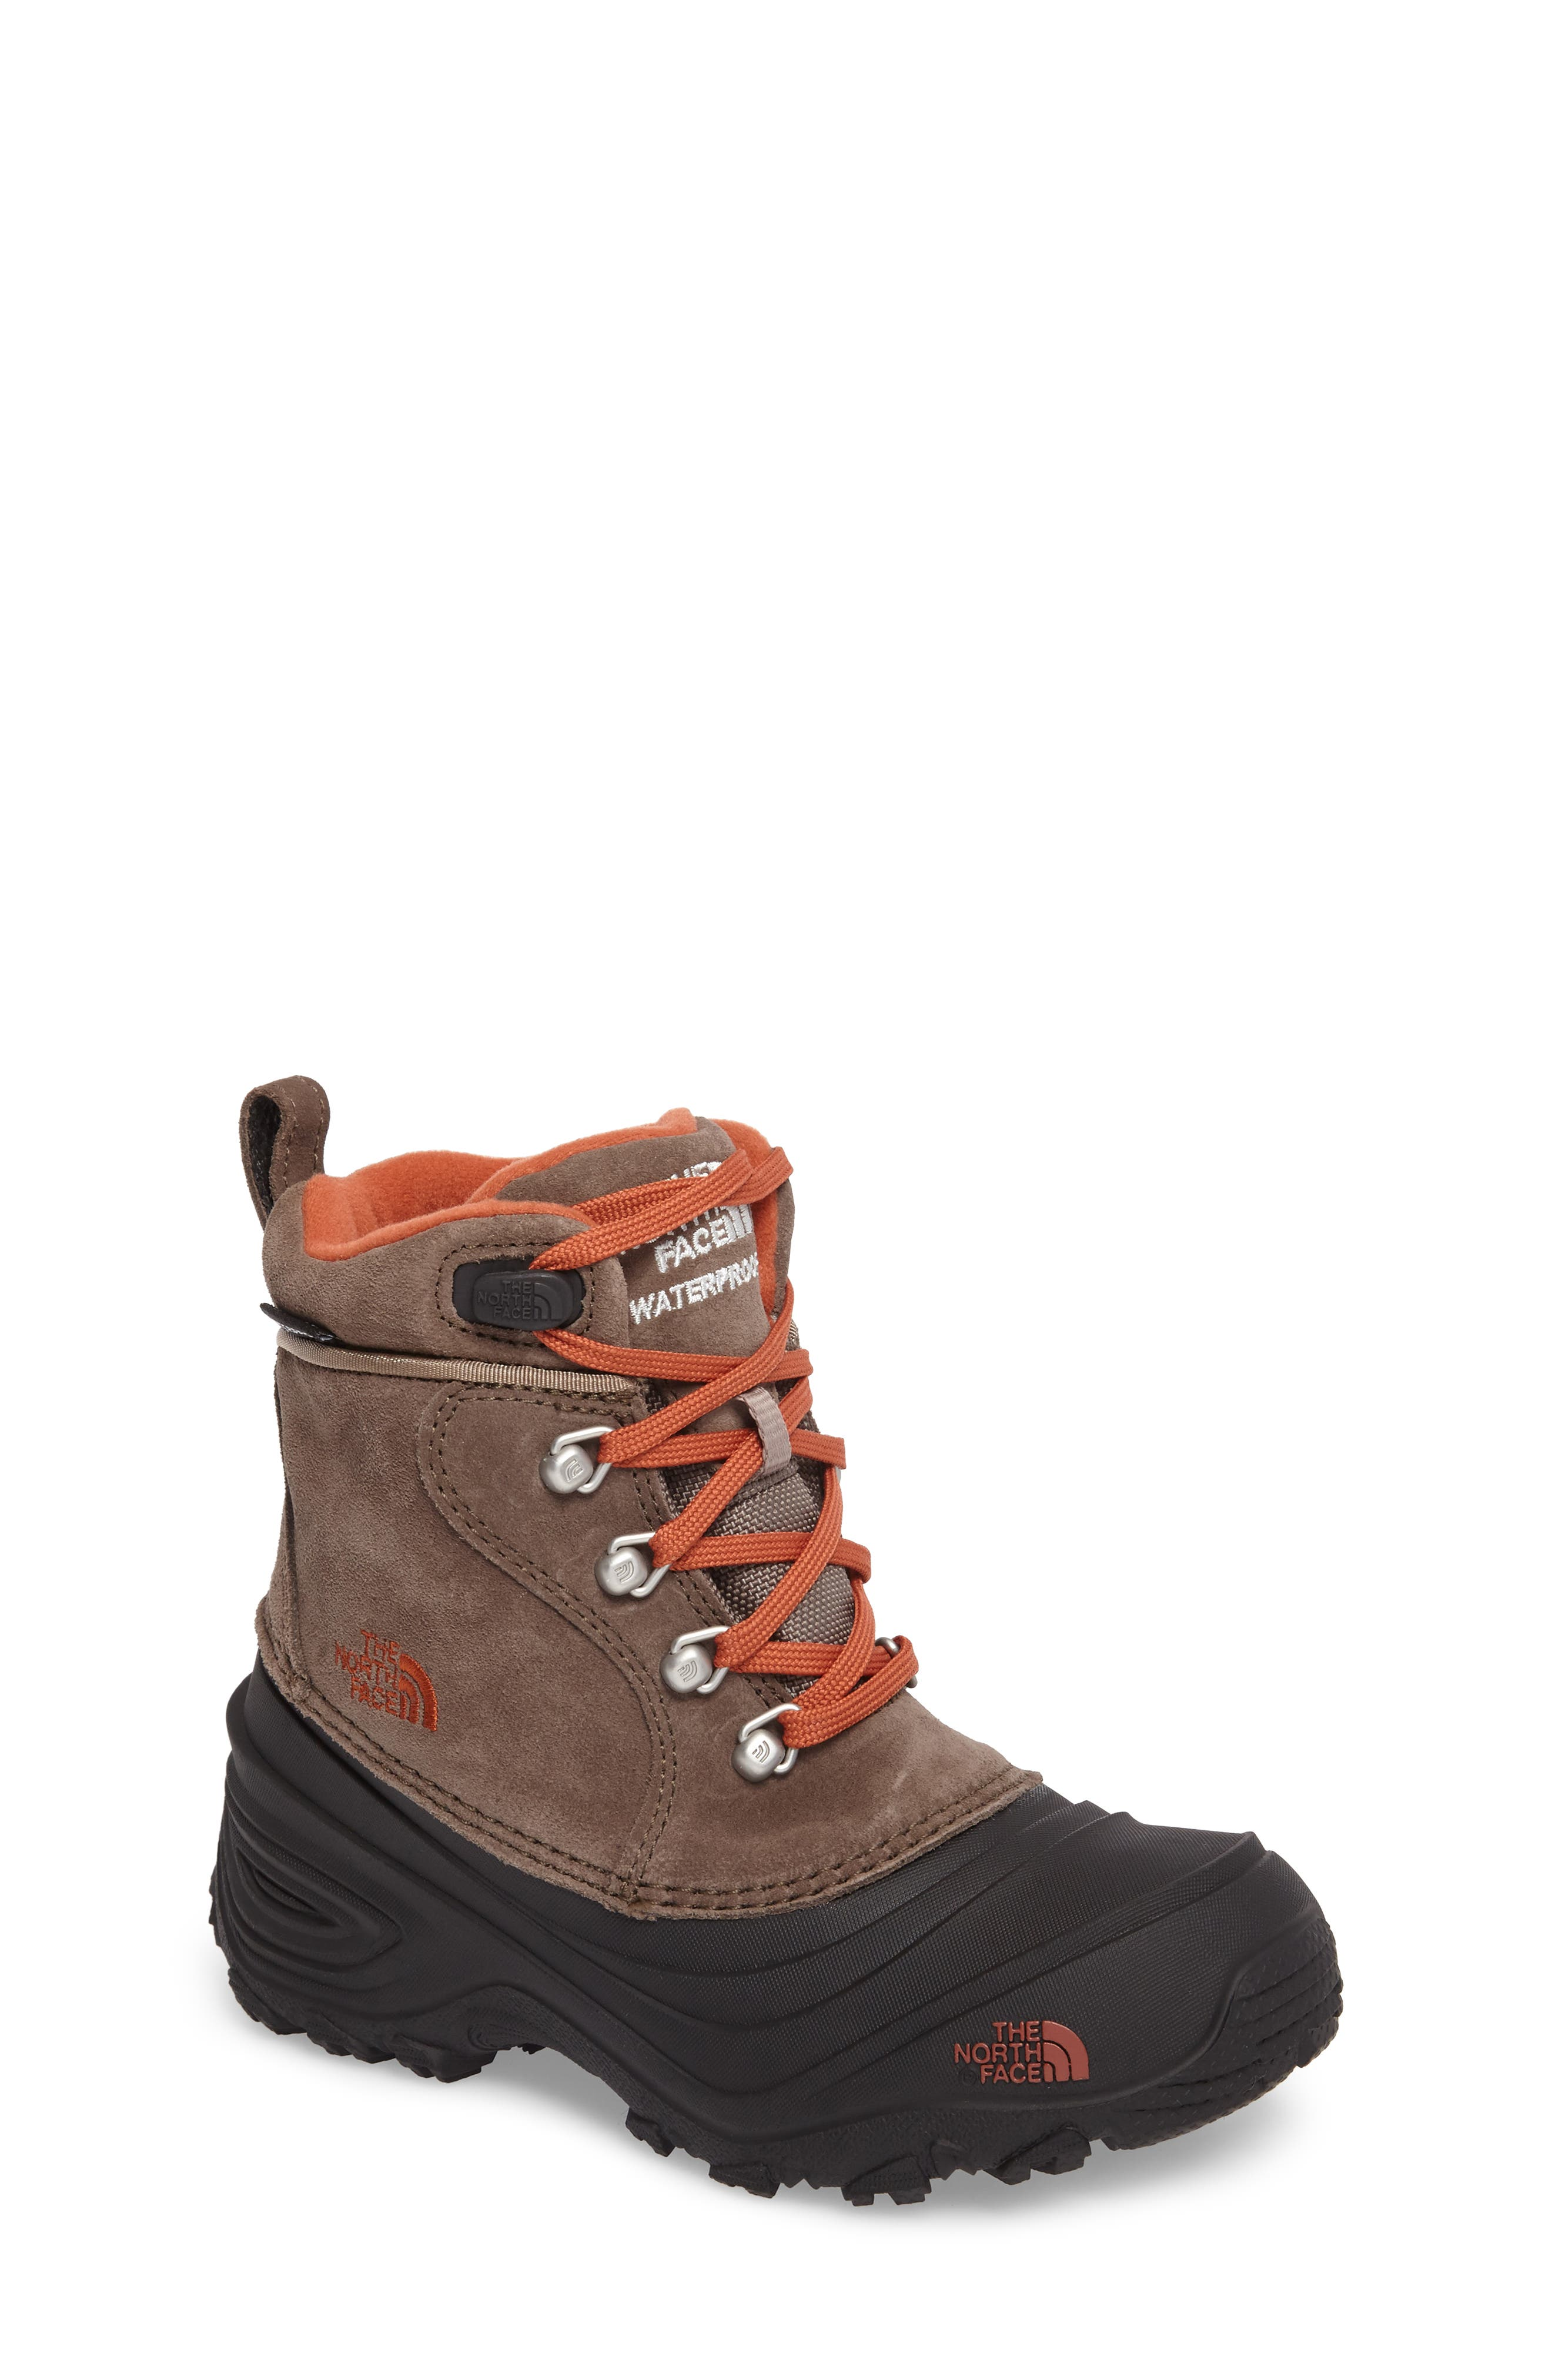 The North Face 'Chilkat II' Waterproof Insulated Snow Boot (Toddler, Little Kid & Big Kid)